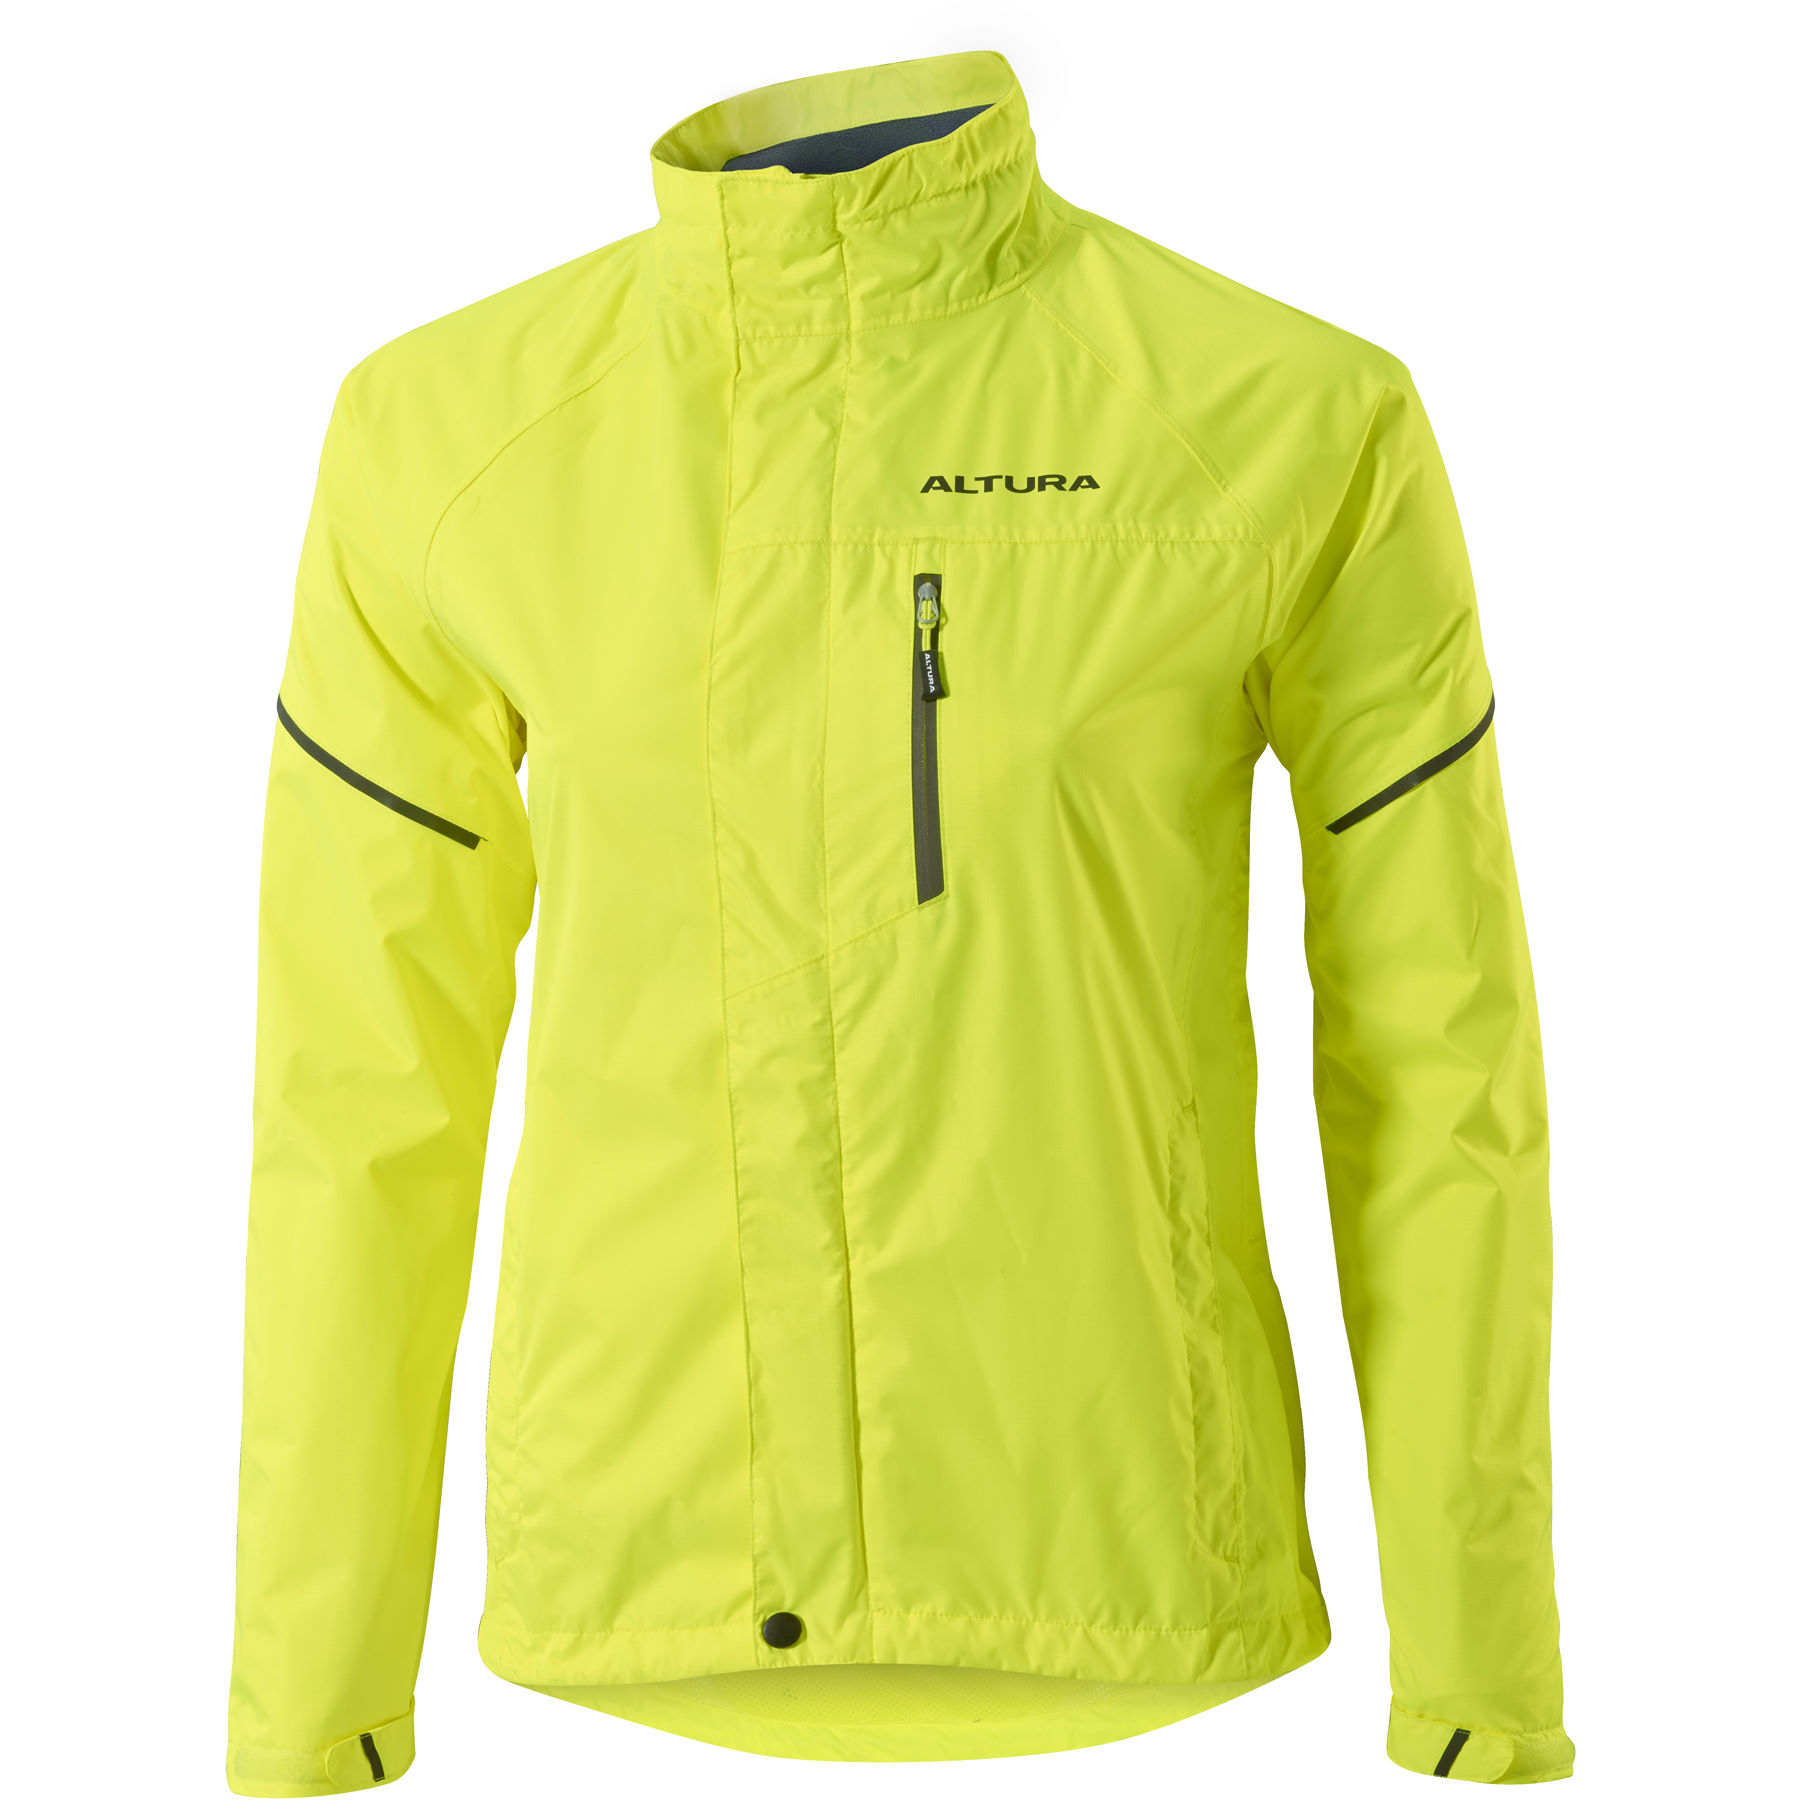 yellow jacket single women Online shopping for clothing from a great selection of dresses, tops & t-shirts, lingerie & underwear, coats & jackets women: yellow jacket yellow jacket.